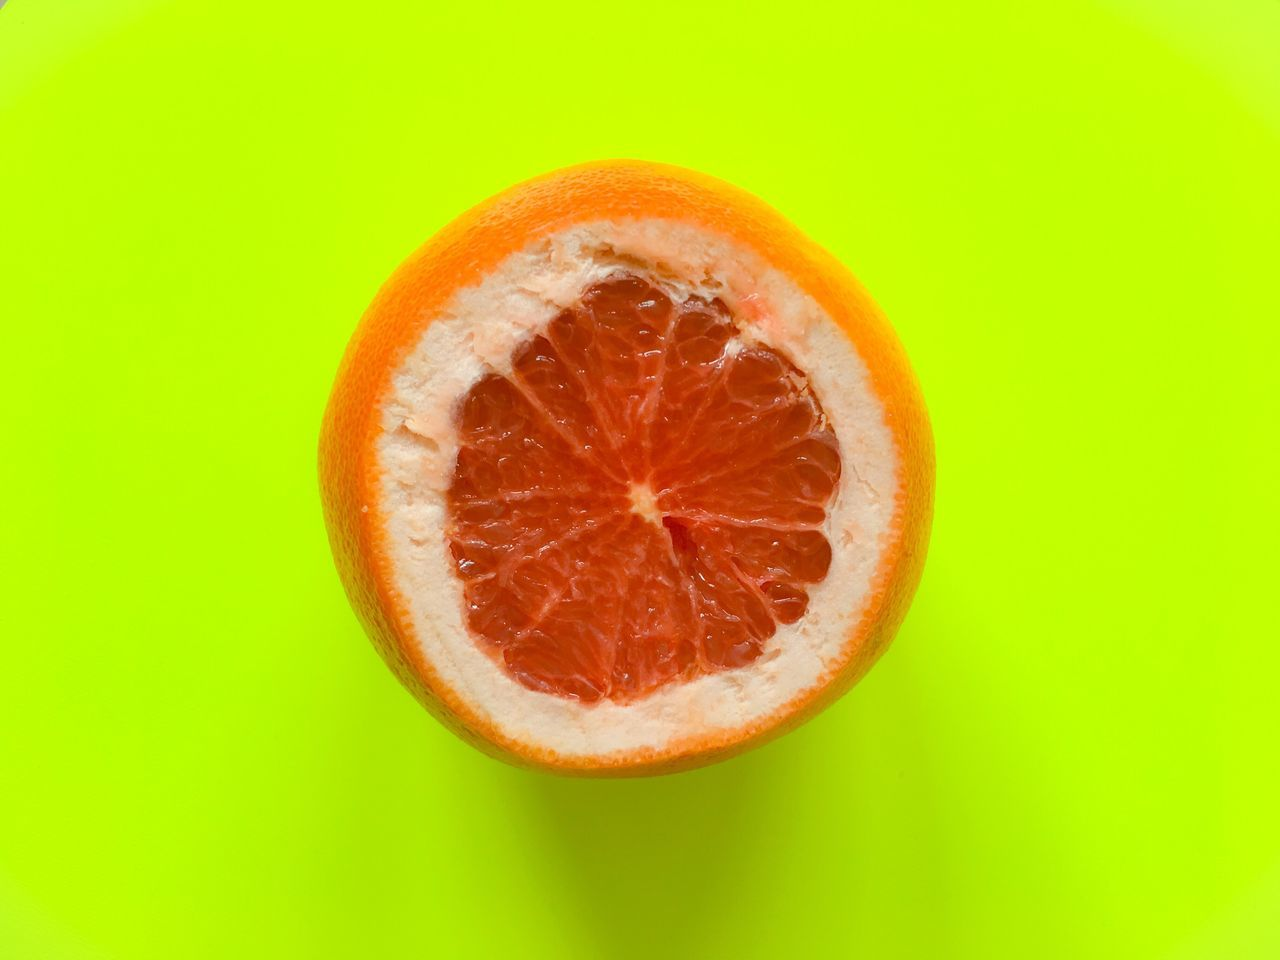 Fruitpower... Freshness Fruit Healthy Eating Close-up Citrus Fruit SLICE Single Object Food And Drink Food Orange - Fruit No People Juicy Studio Shot Cross Section Nature Blood Orange Getting Inspired Eyeem Market Exceptional Photographs Neon